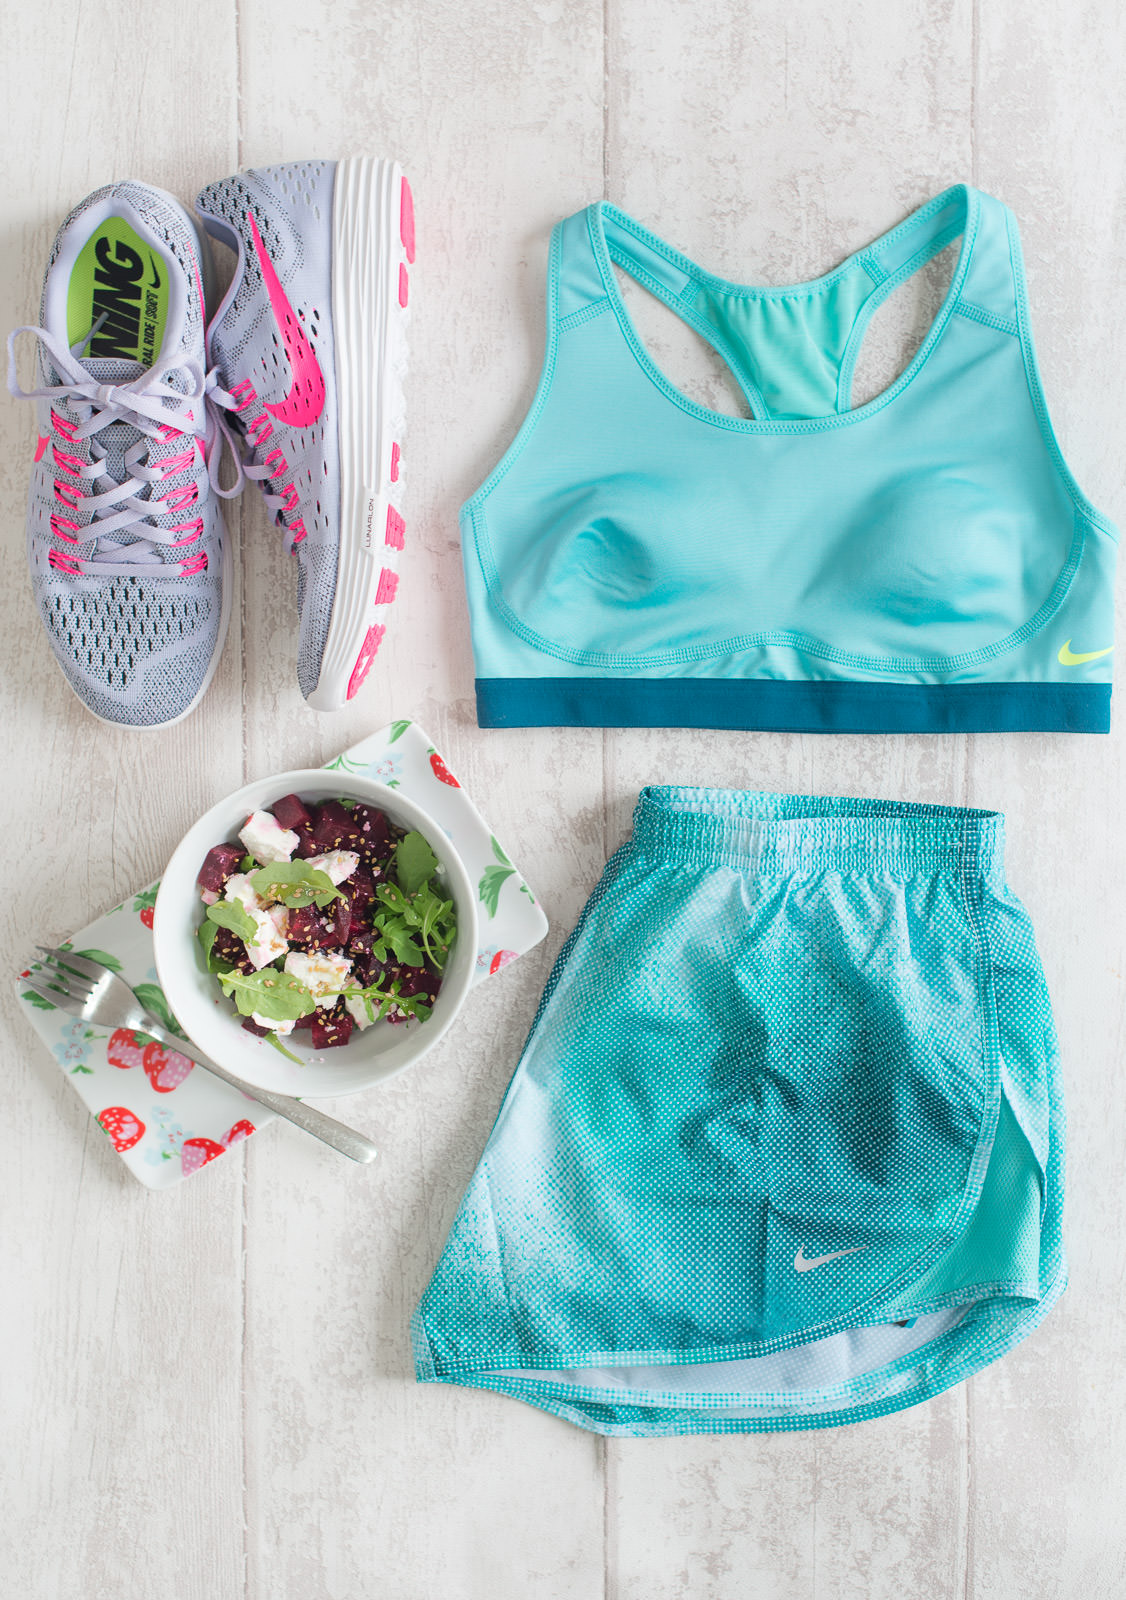 https://www.modeandthecity.net/wp-content/uploads/2015/05/Blog-mode-and-the-city-lifestyle-nike-food-1.jpg